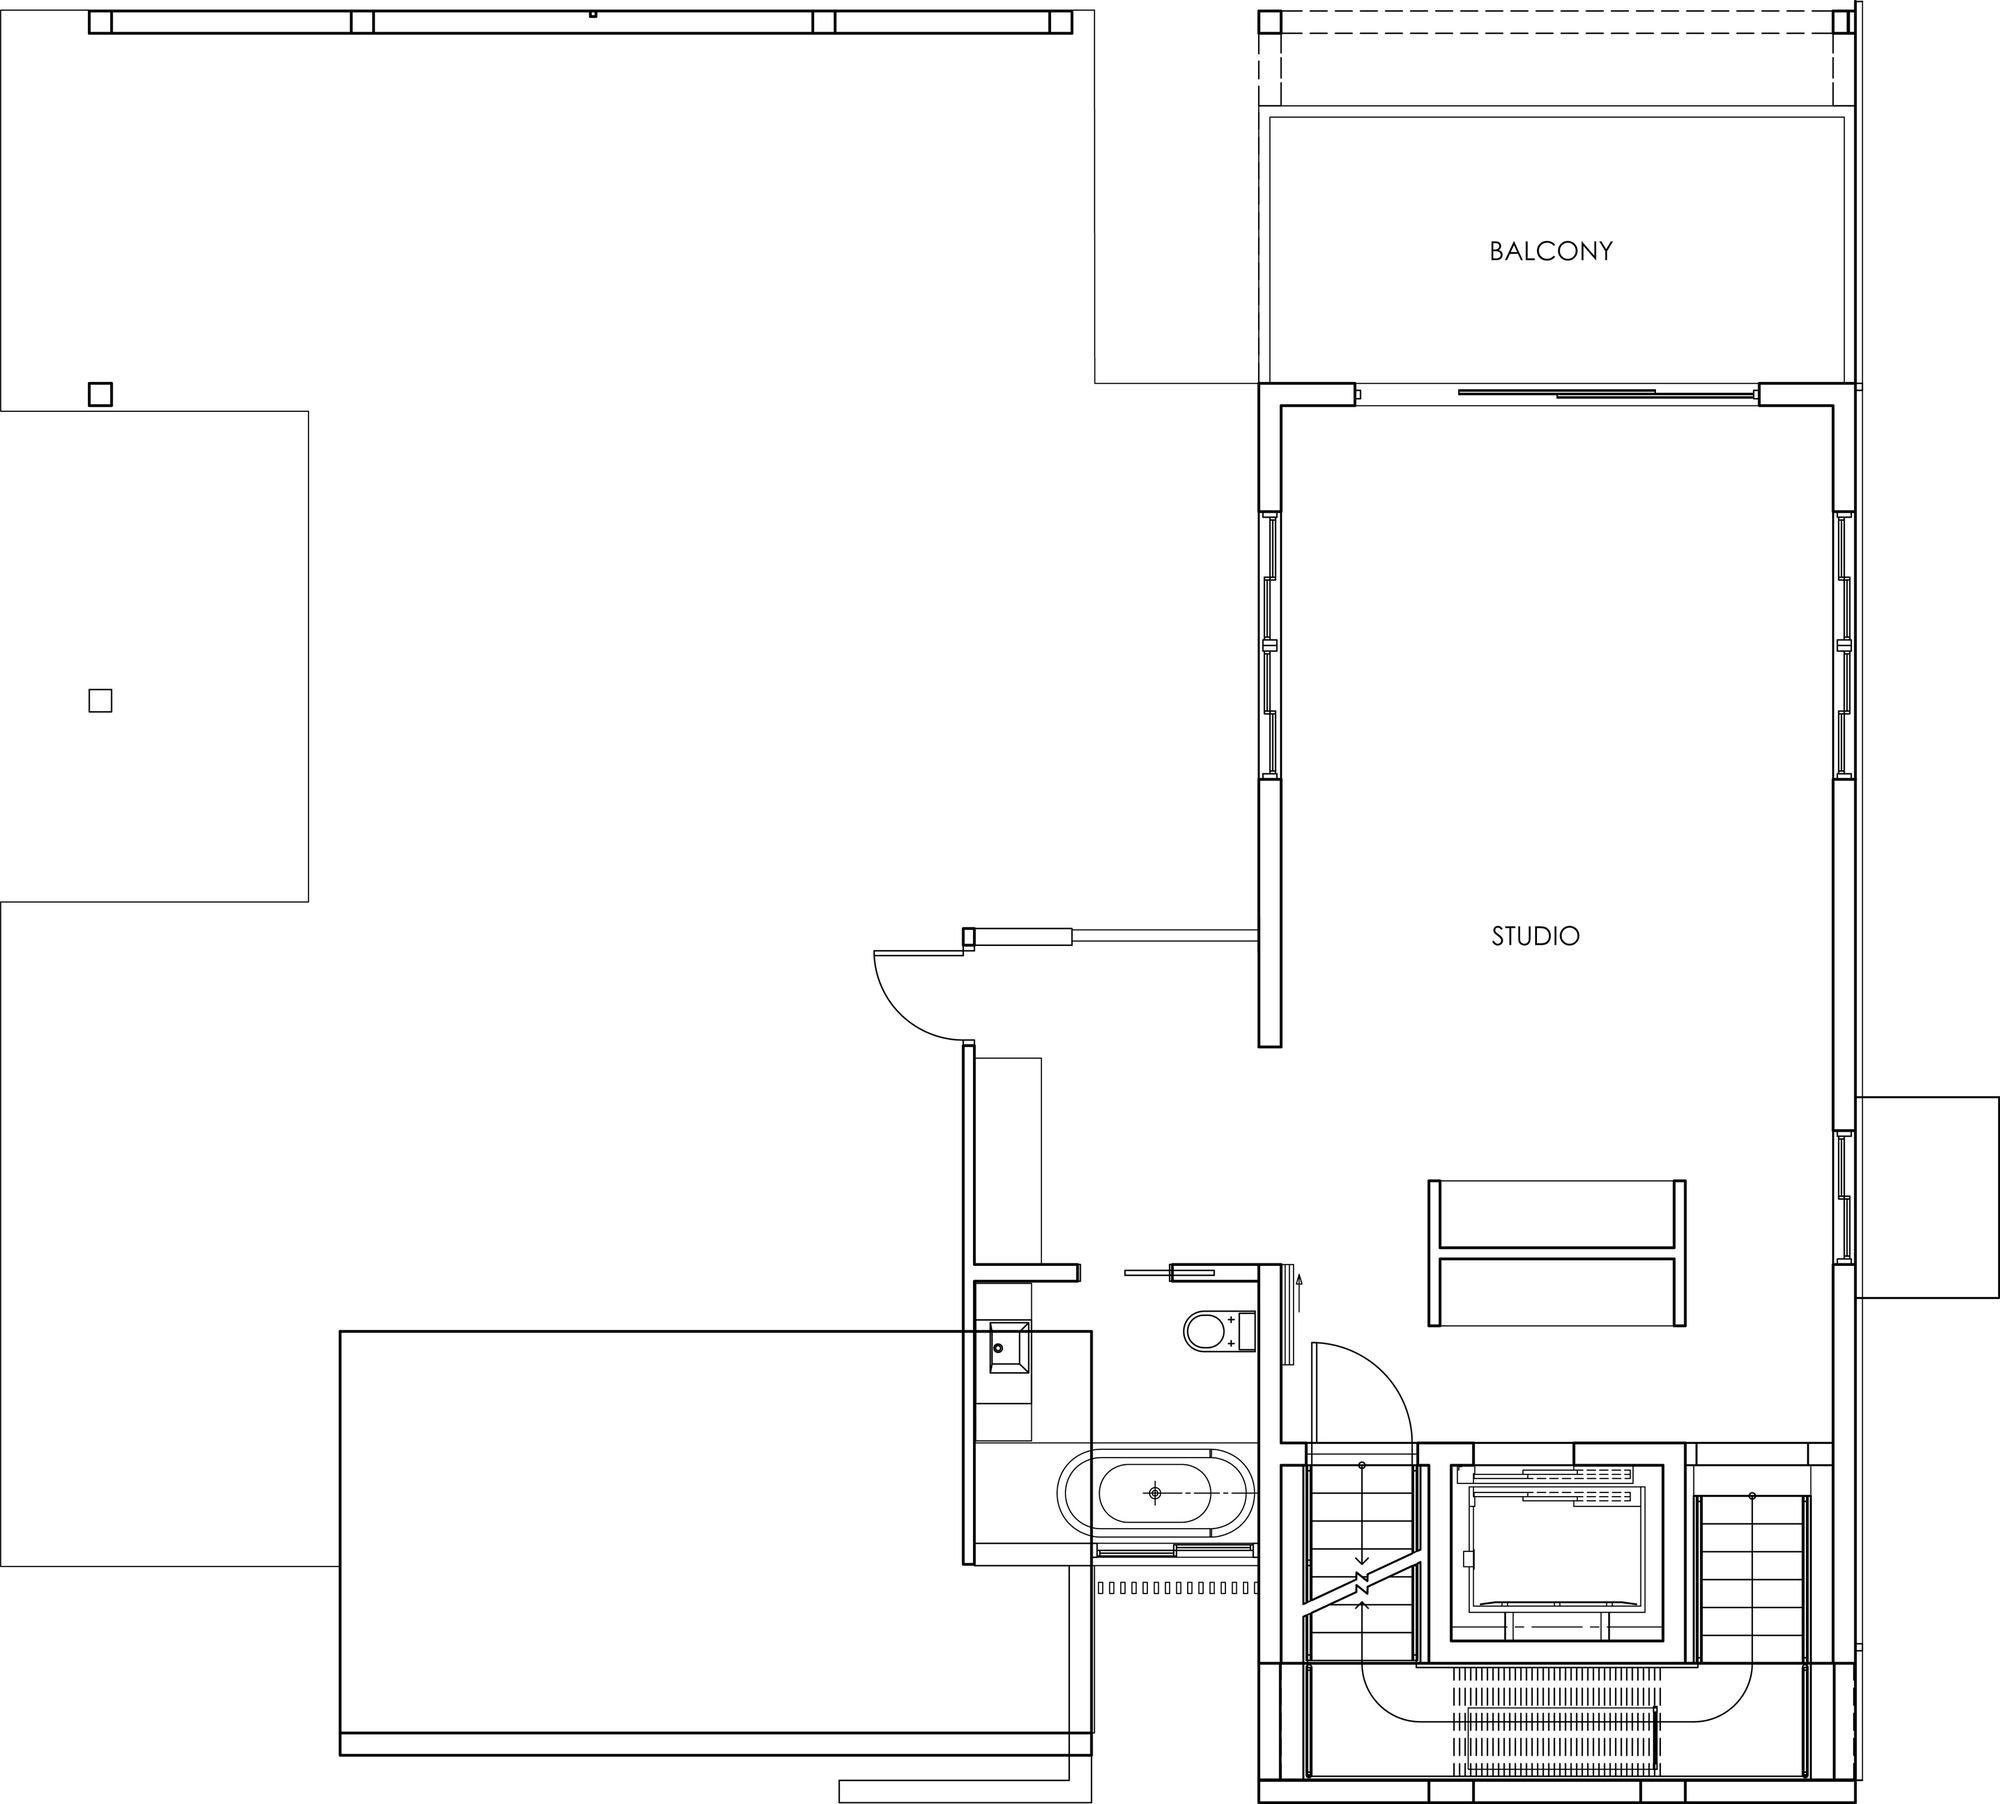 residencia-tavernier-drive-luis-pons-design-lab_101-house_renovation_-_tavernier_key_fl-_third_floor_plan